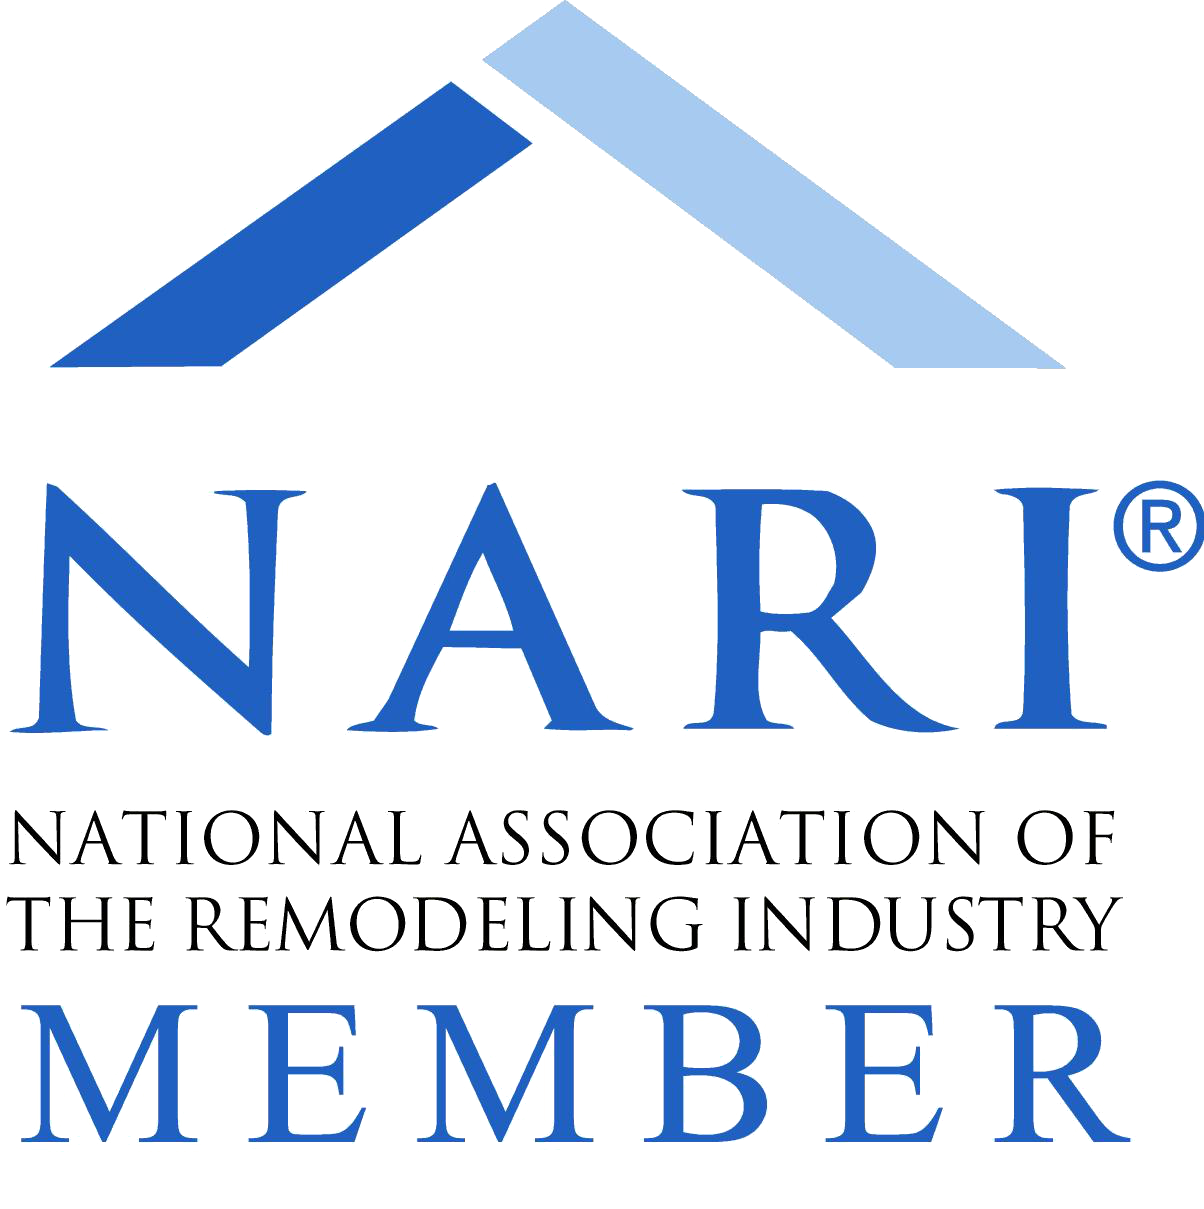 NARI NationalAssociation of the Remodeling Industry Member